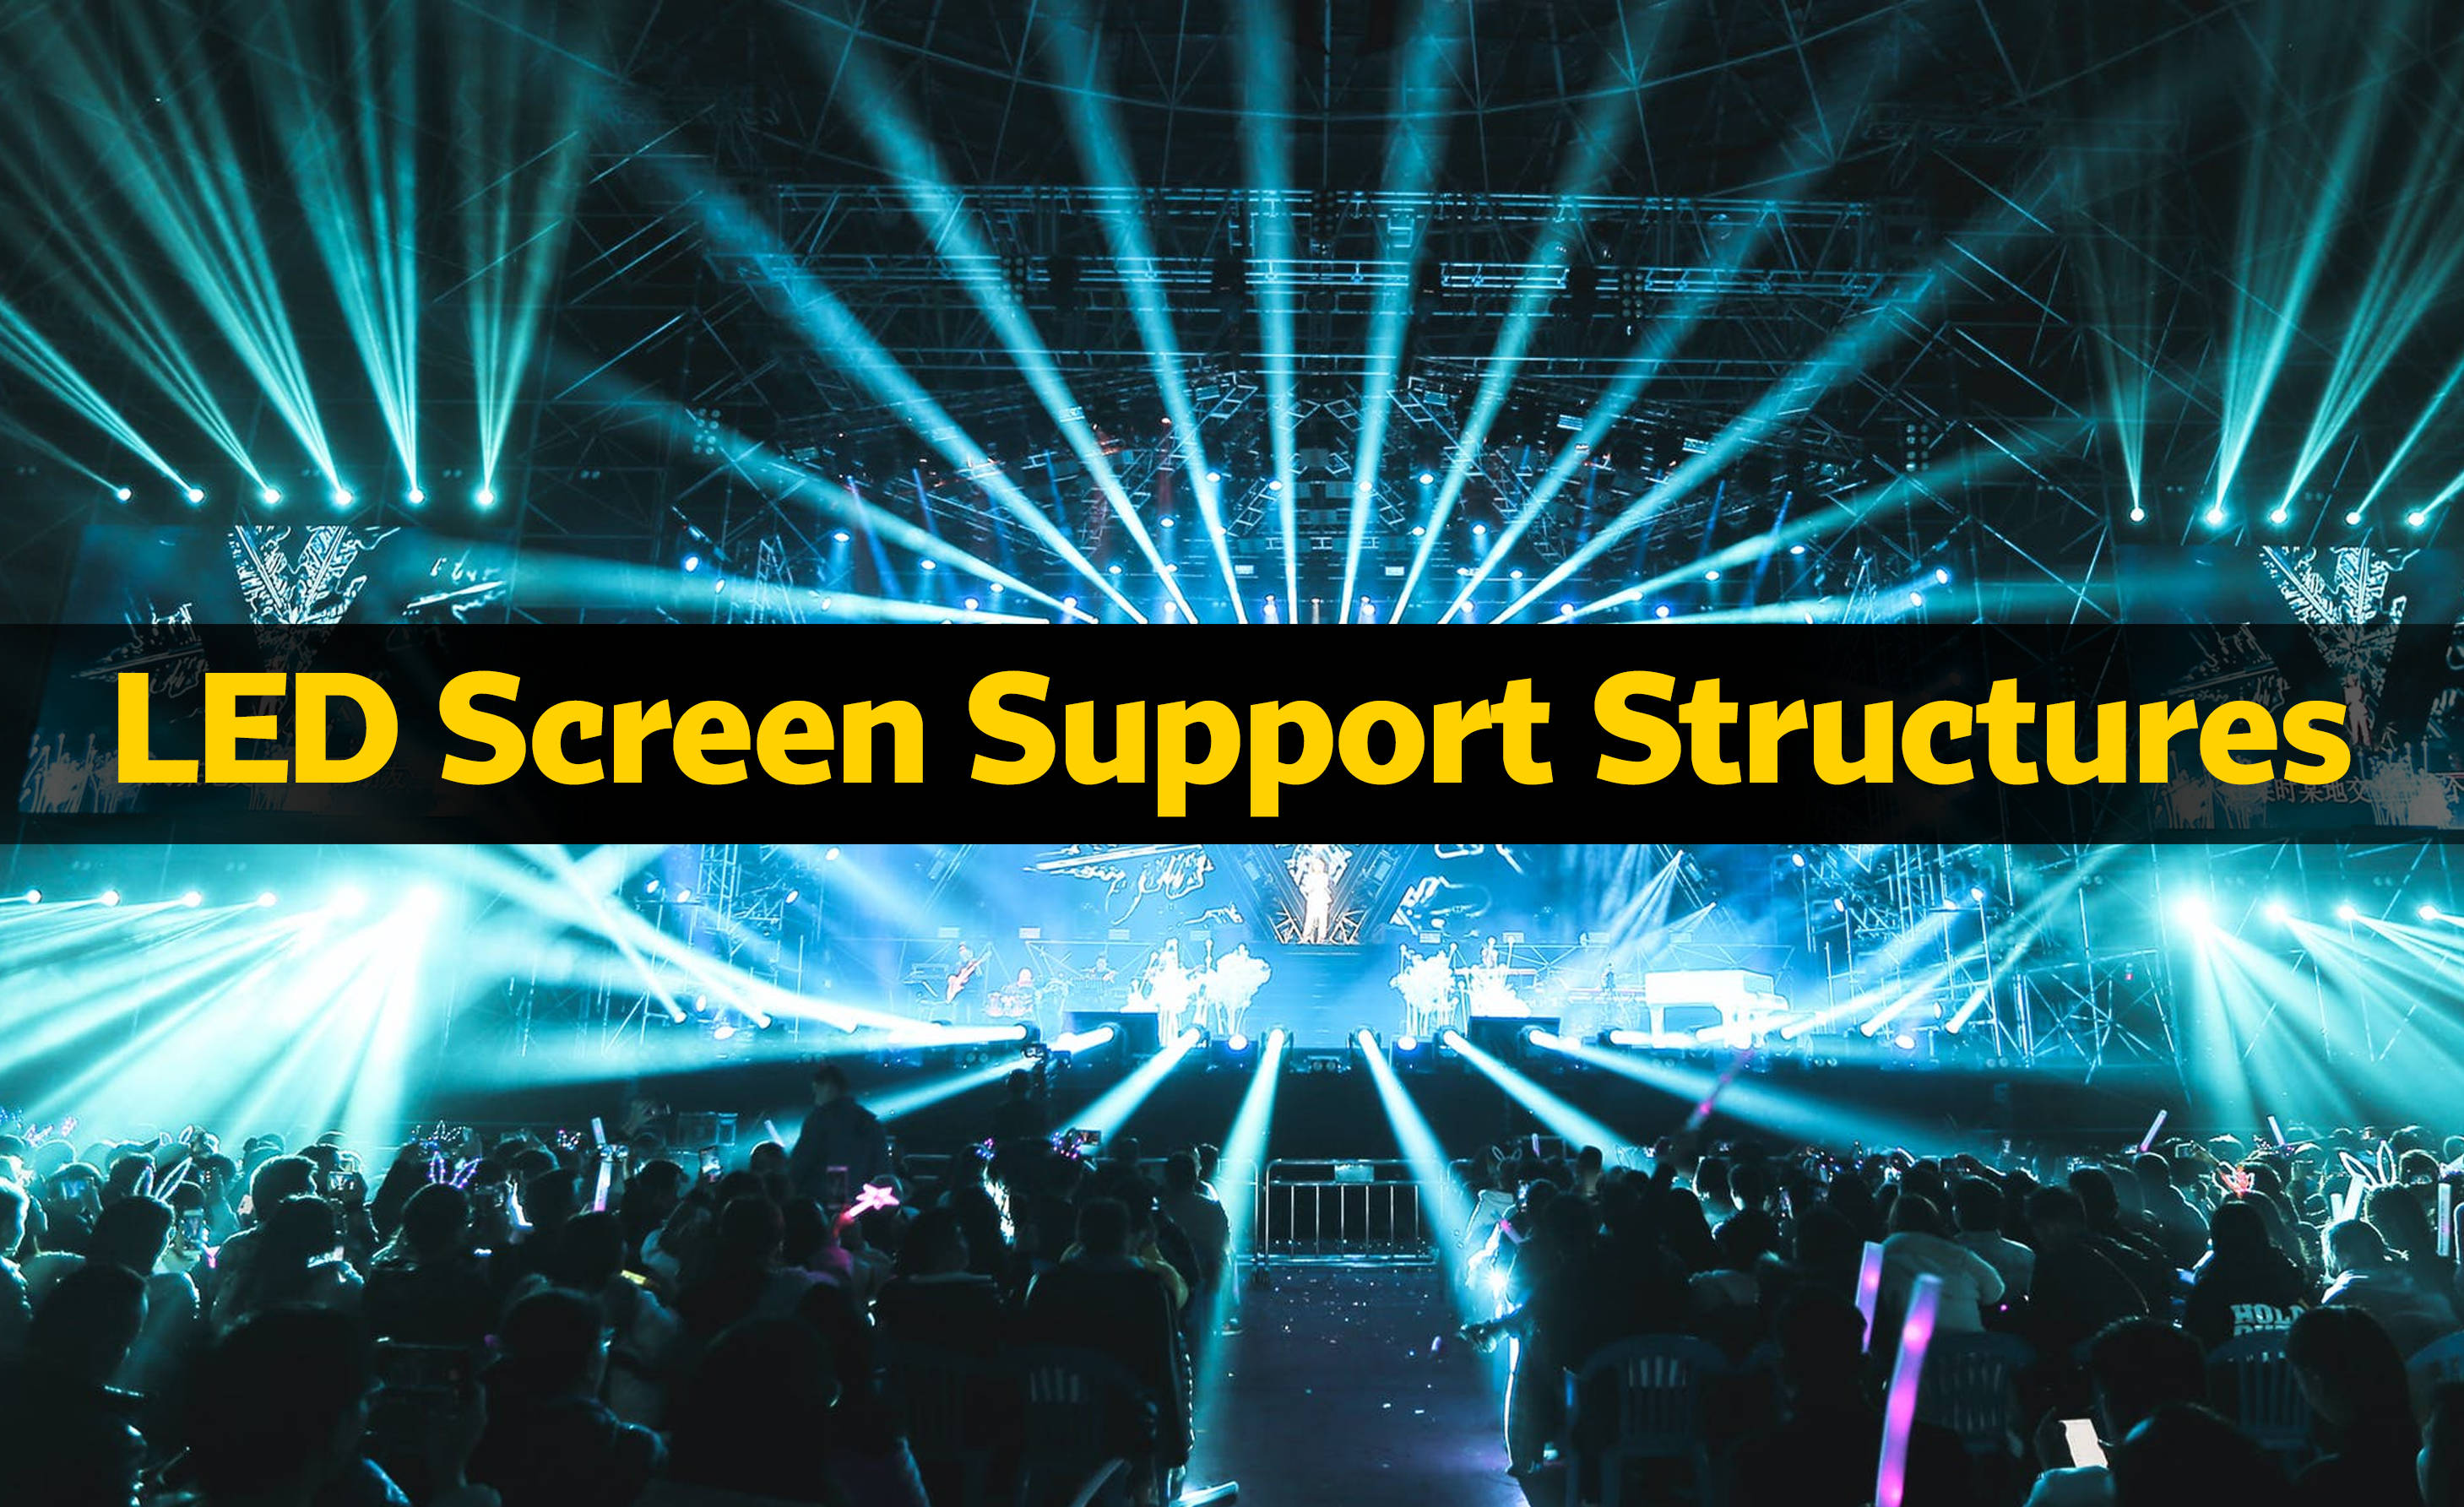 MILOS LED Screen Support Structures